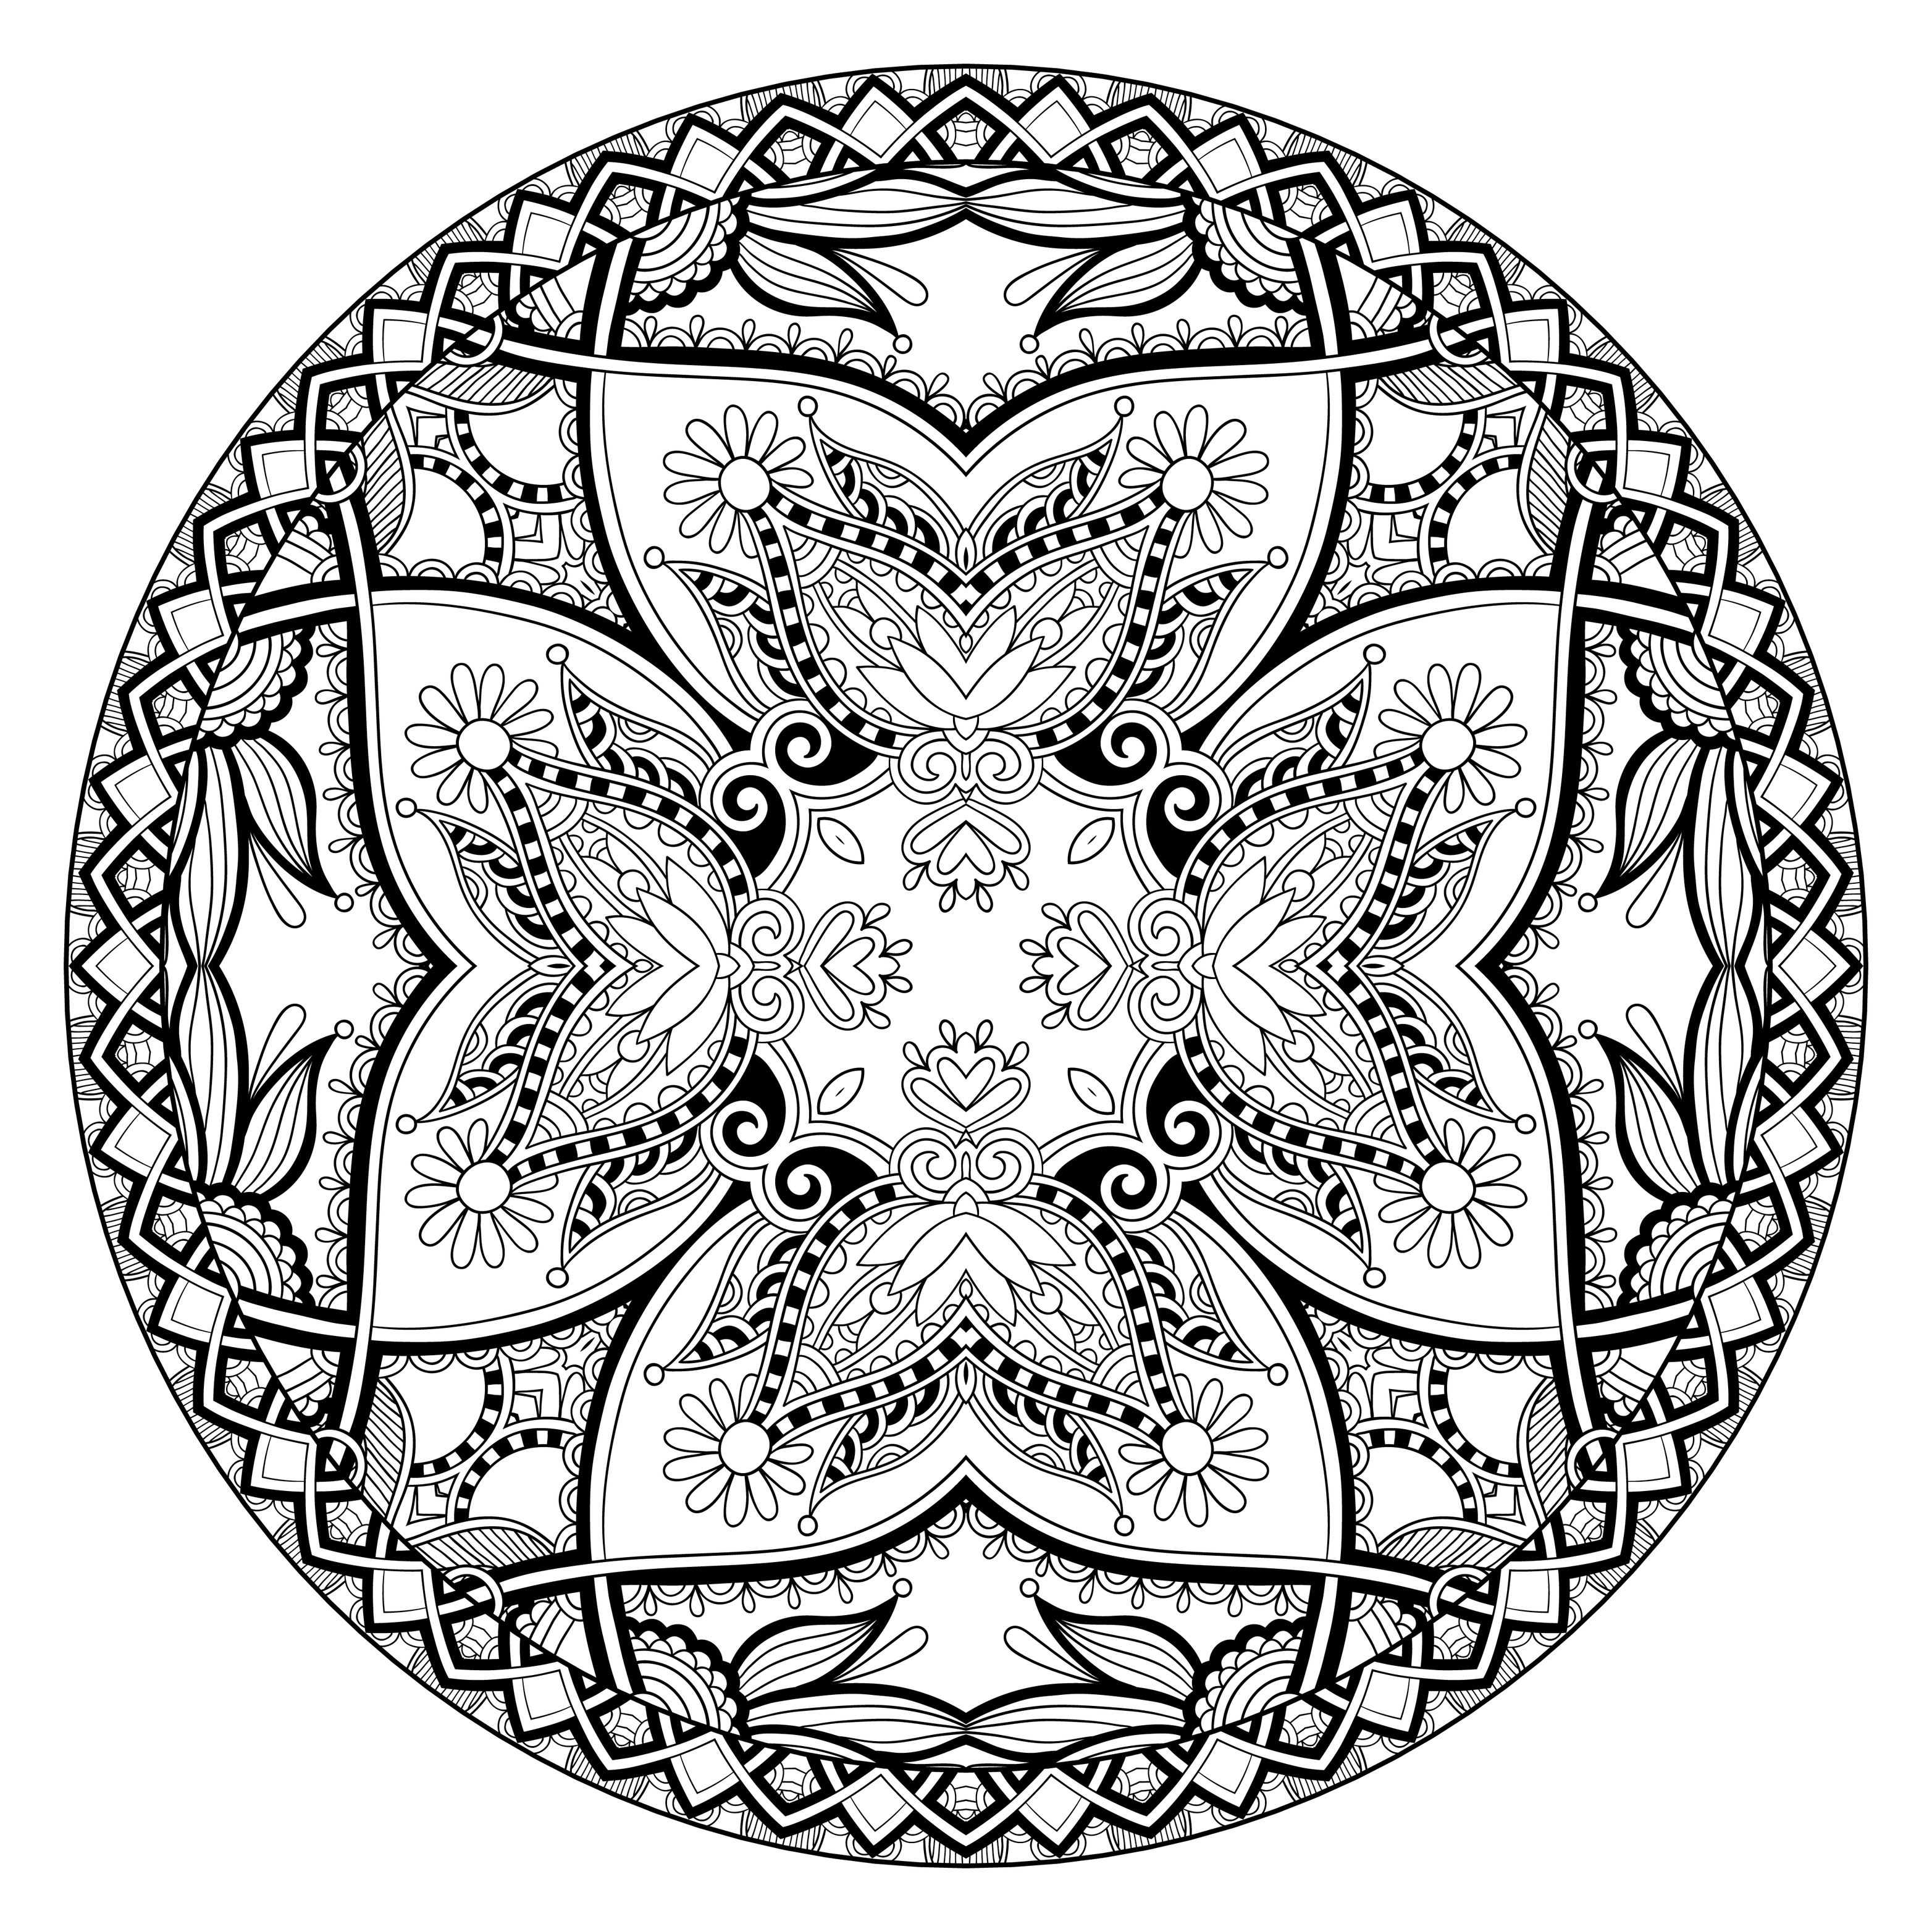 750 Free Mandala Coloring Pages Download Download Free Images